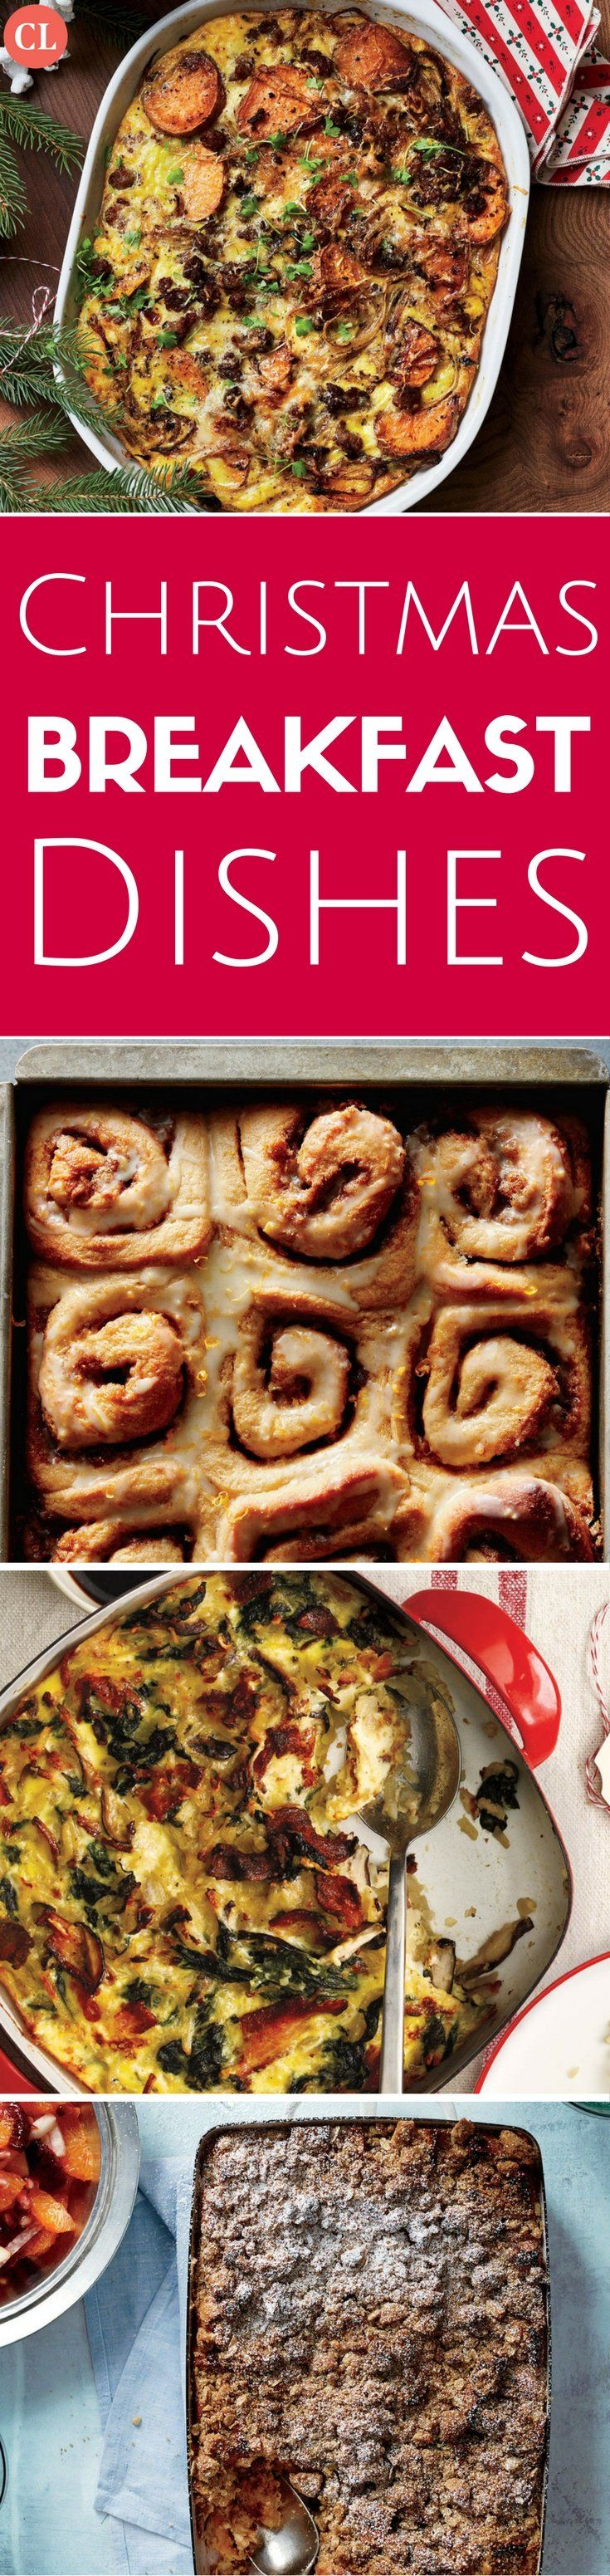 The holidays promise some of the happiest, coziest family breakfasts of the year. Make it hassle-free as well with sweet and savory dishes you can make in advance. From gooey cinnamon rolls and a cheesy breakfast strata to creamy casseroles and a light spinach quiche, we've cooked up dishes that will delight your senses and your family. These easy, make-ahead casseroles and breakfast rolls are a great joy to the cook and deliver comfort to the table.   Cooking Light